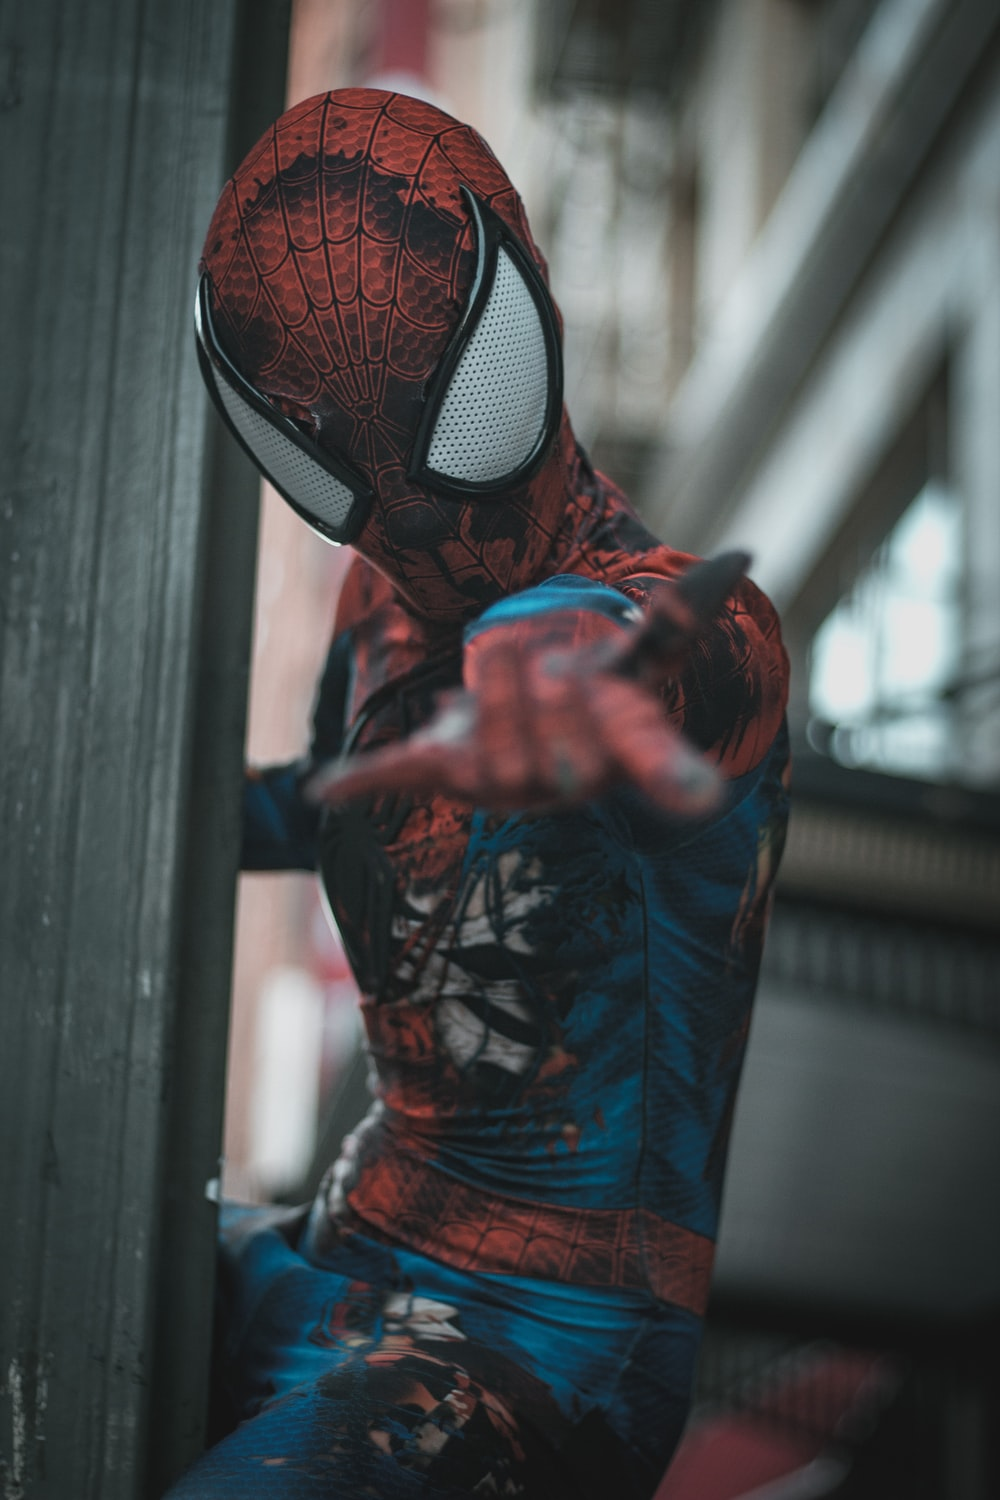 500+ Superhero Pictures [HD] | Download Free Images on Unsplash